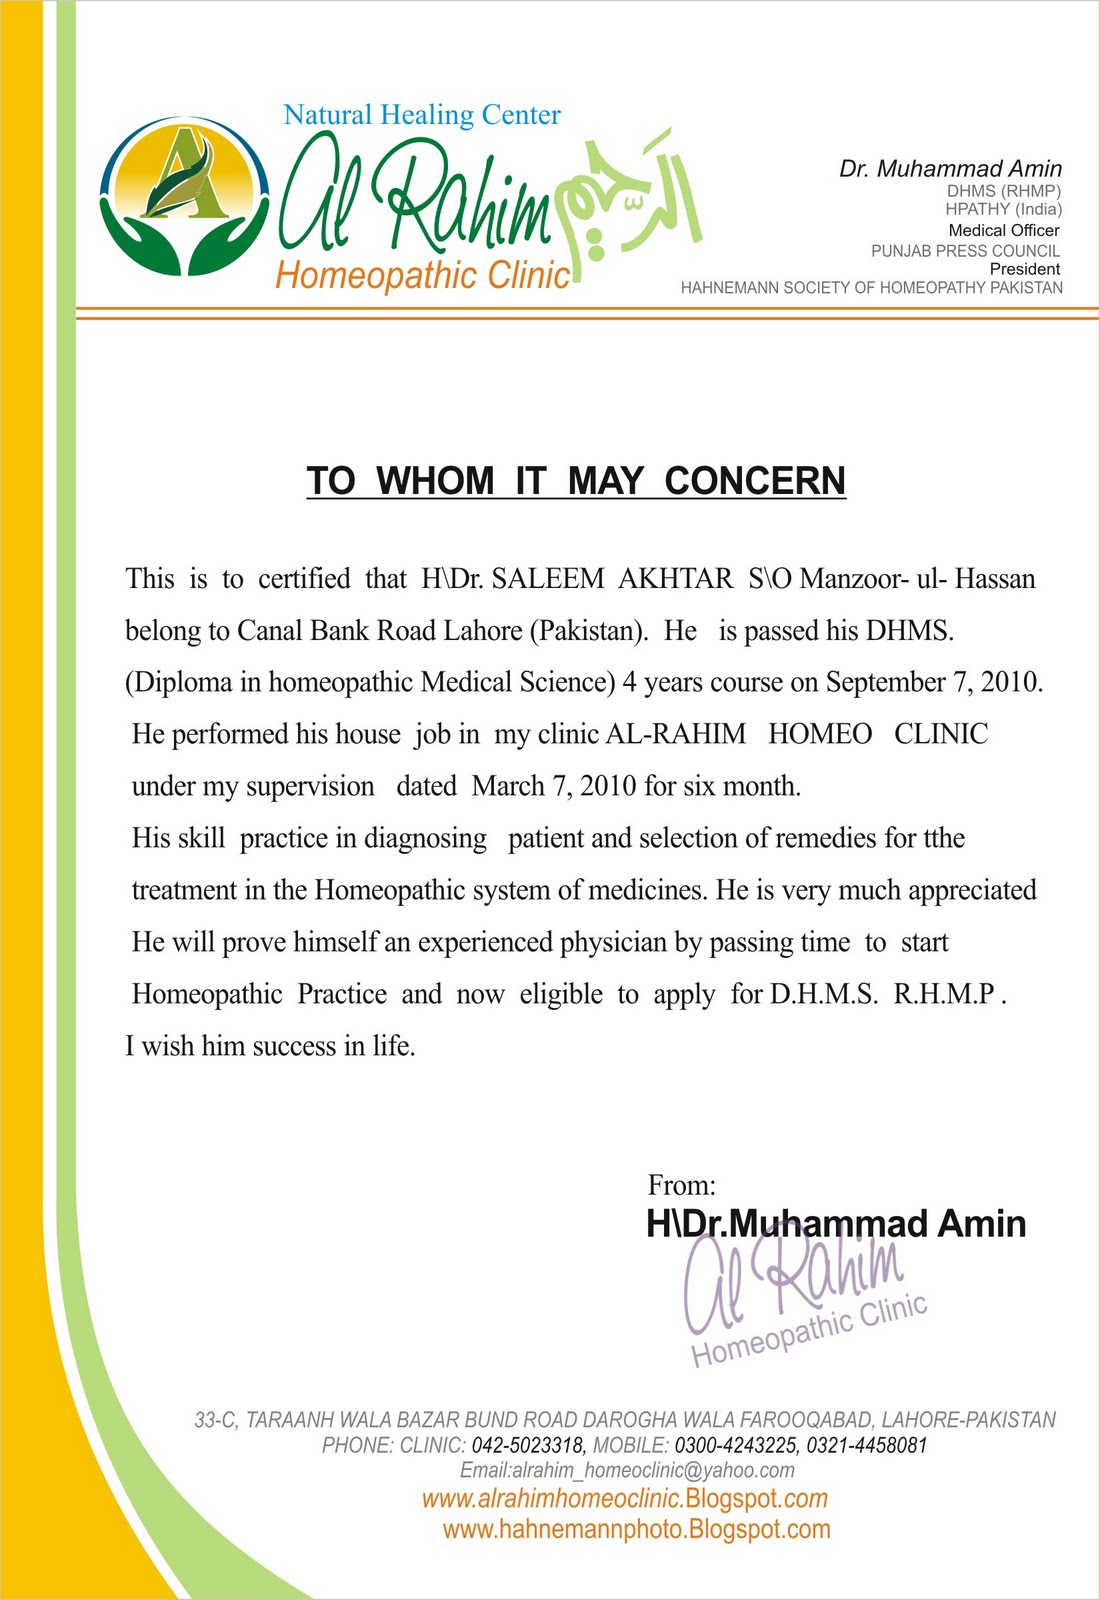 alrahim Sample of Experience Certificate For DHMS RHMP – Samples of Experience Certificate